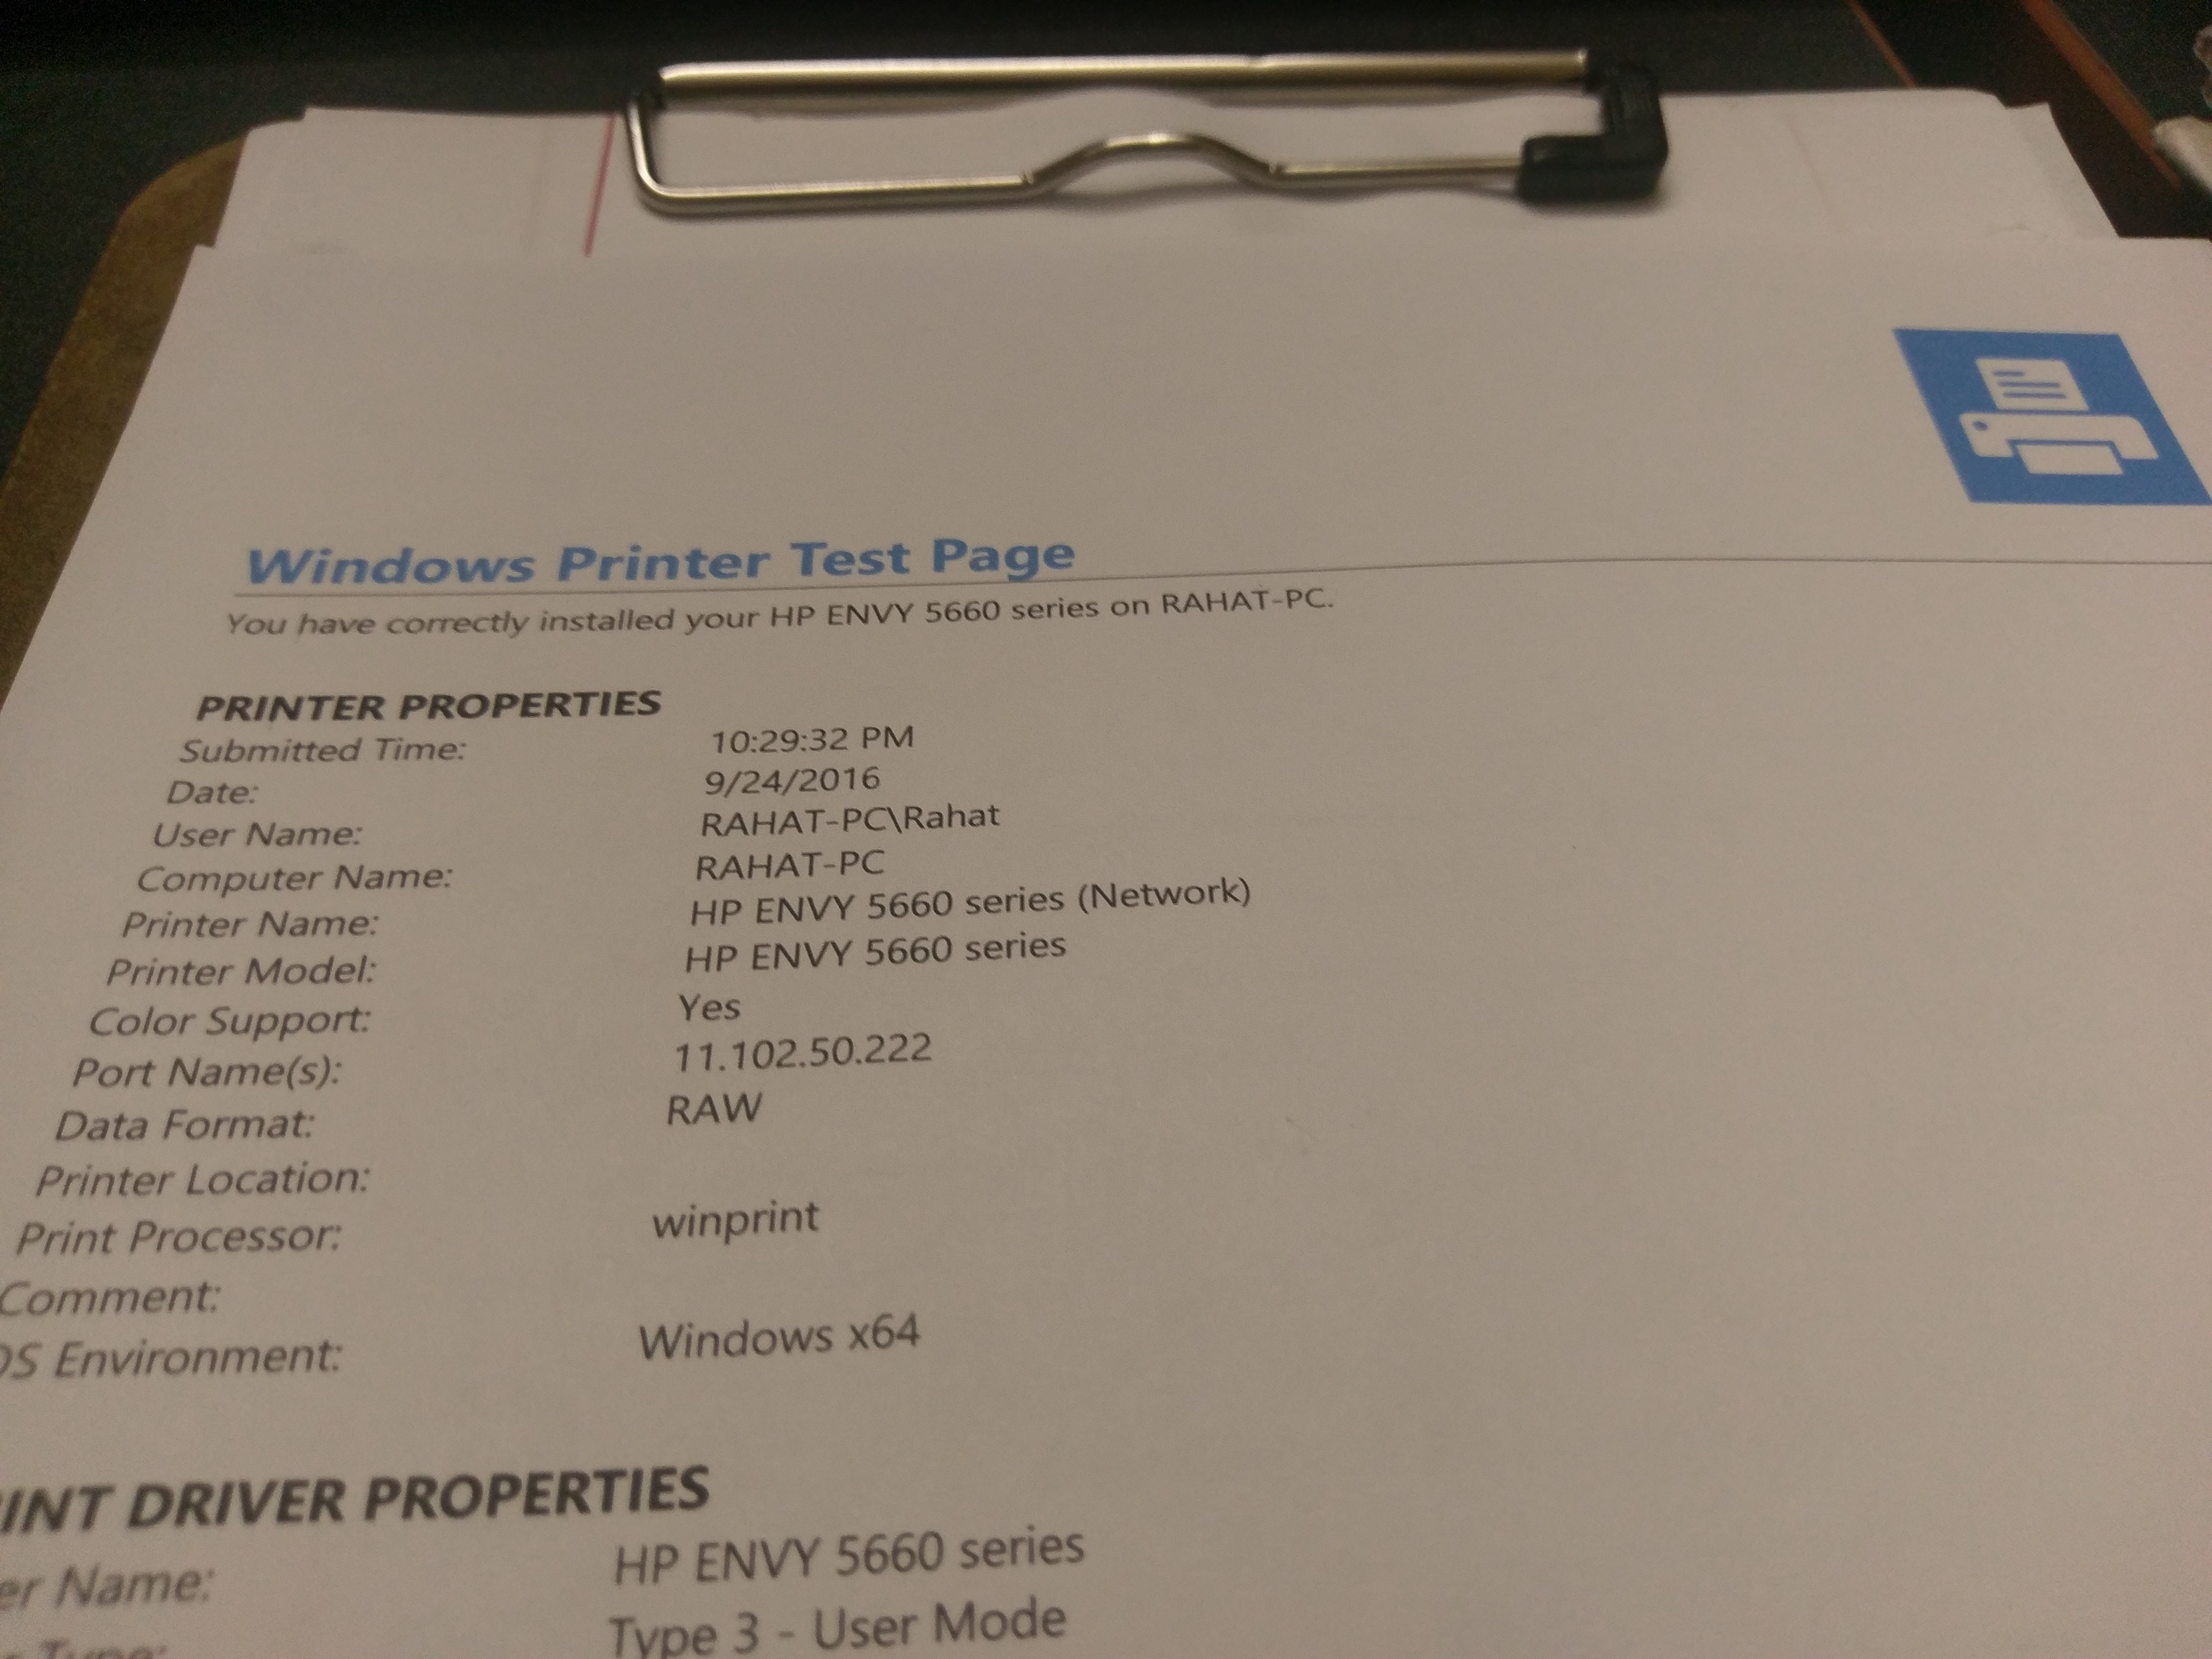 I'm trying to find a printer claim code from my hp envy 5660 printer